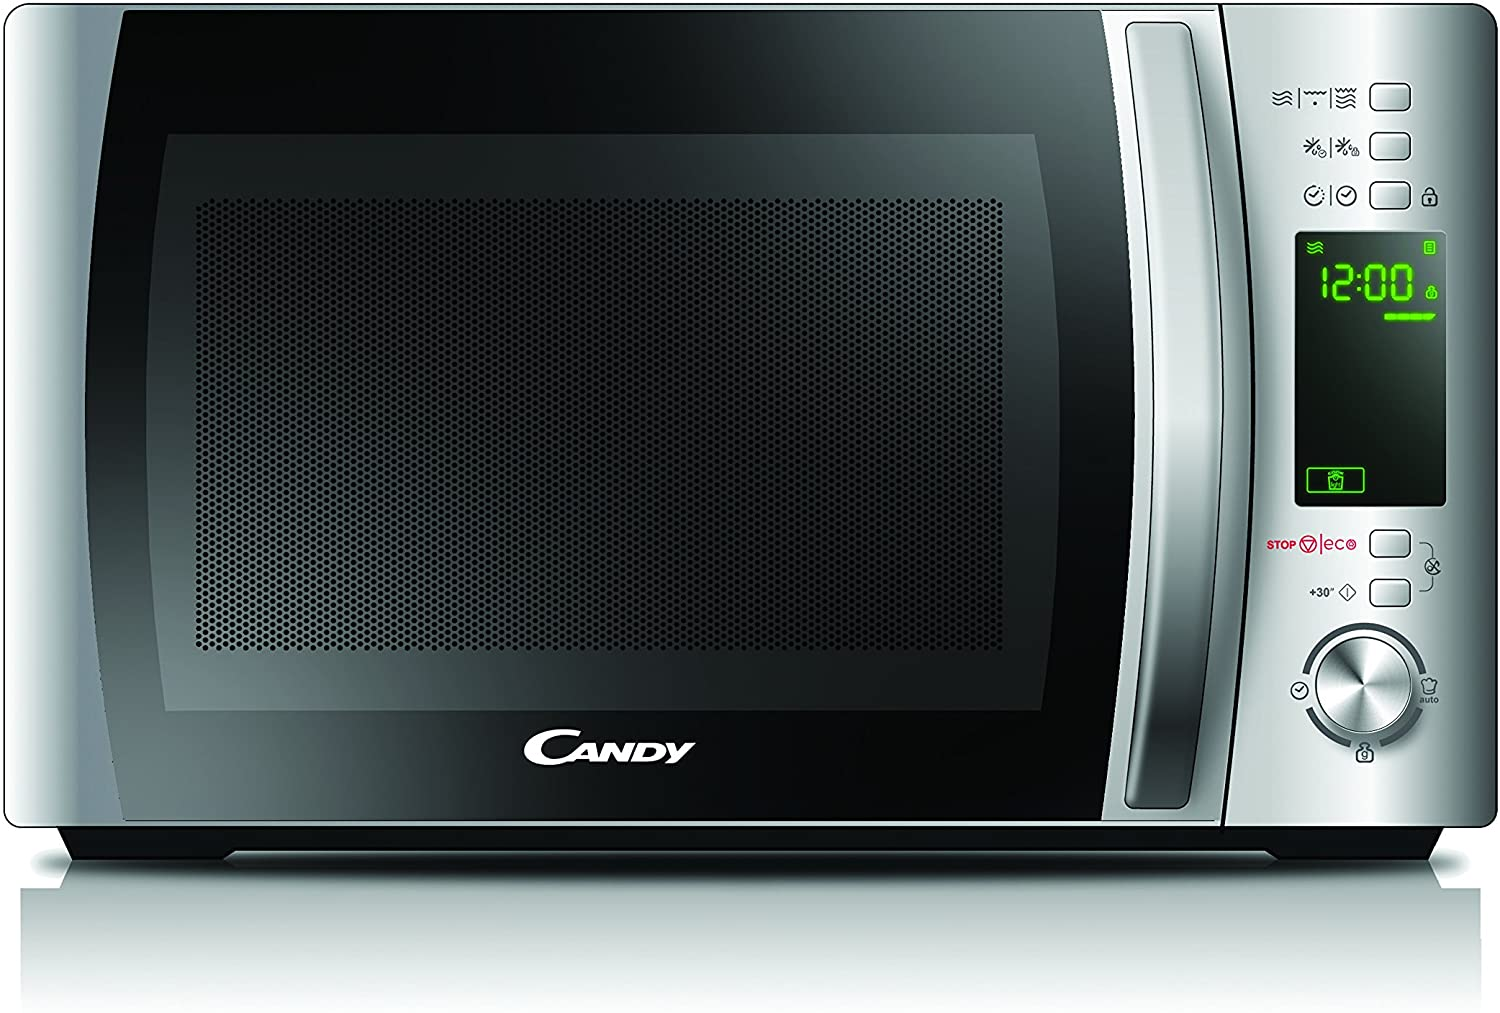 Candy Microonde CMXG20D - Grill e App Cook-in, 20L, 40 Programmi Automatici, 700 W, Argento